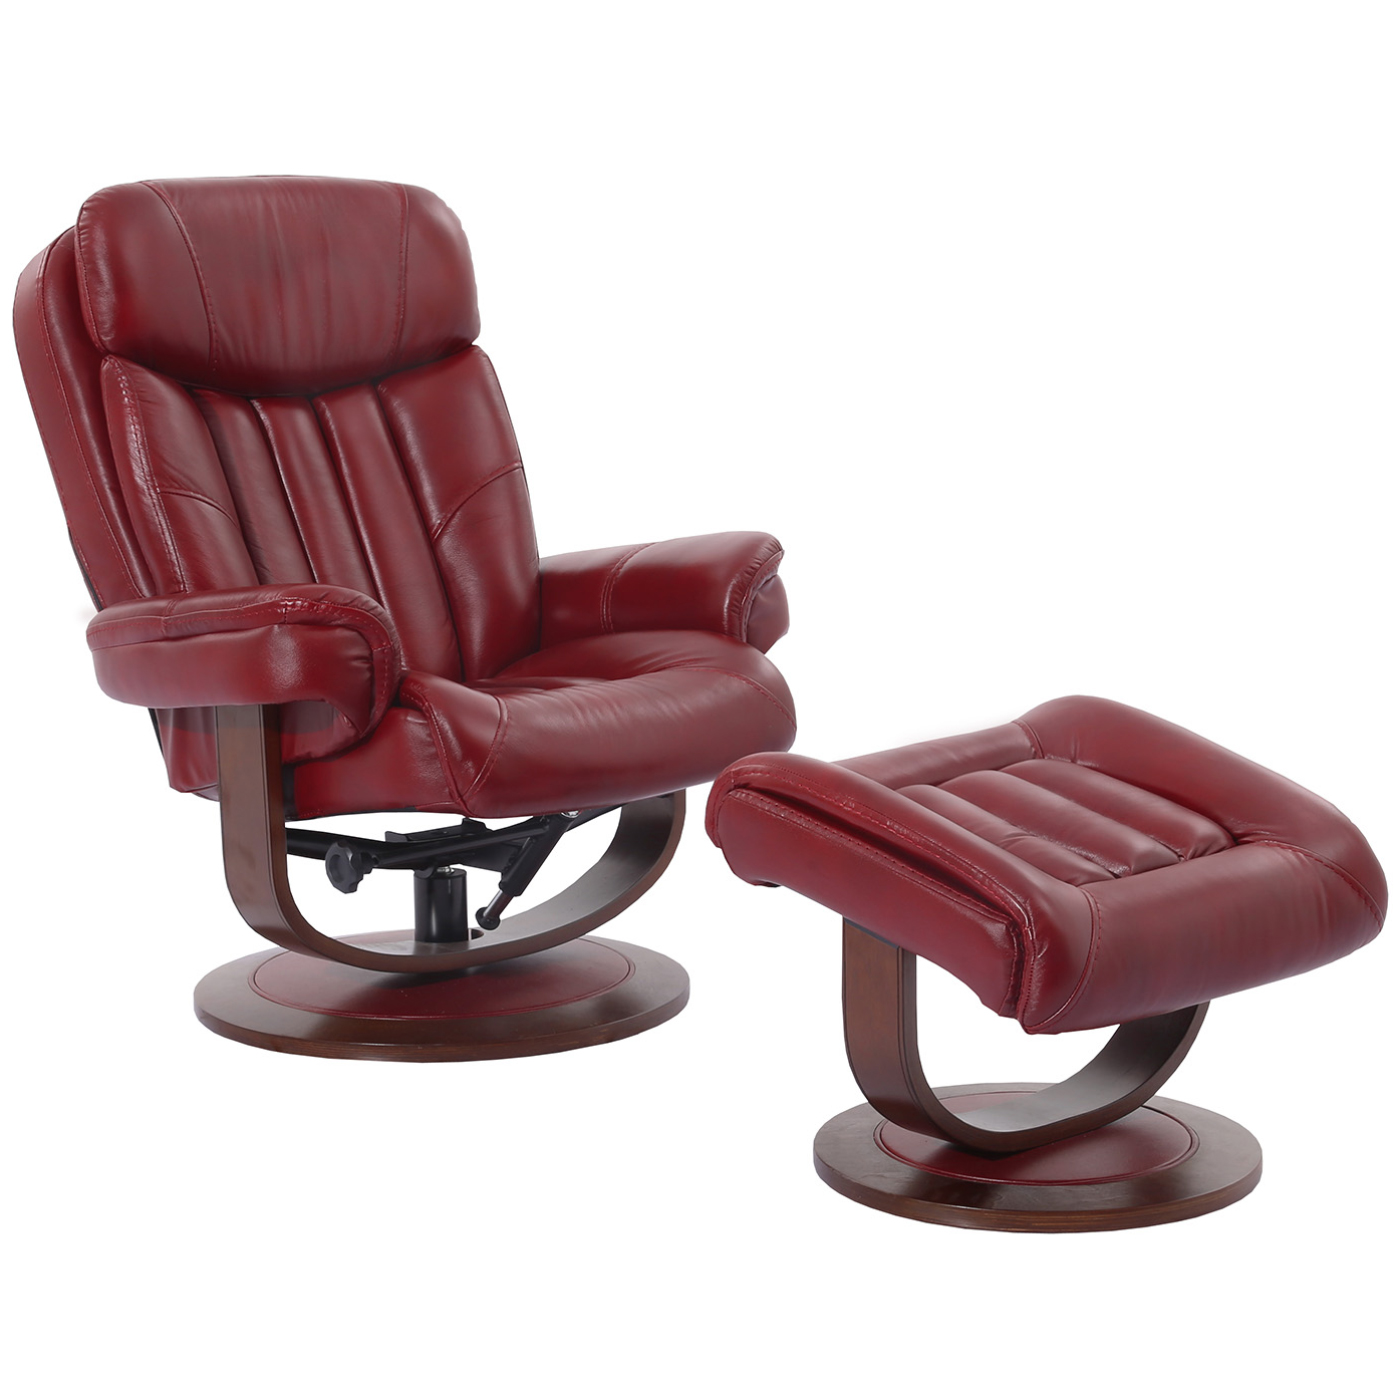 Red Leather Swivel Chair Prince Manual Reclining Swivel Chair Ottoman In Rouge Red Top Grain Leather By Parker House